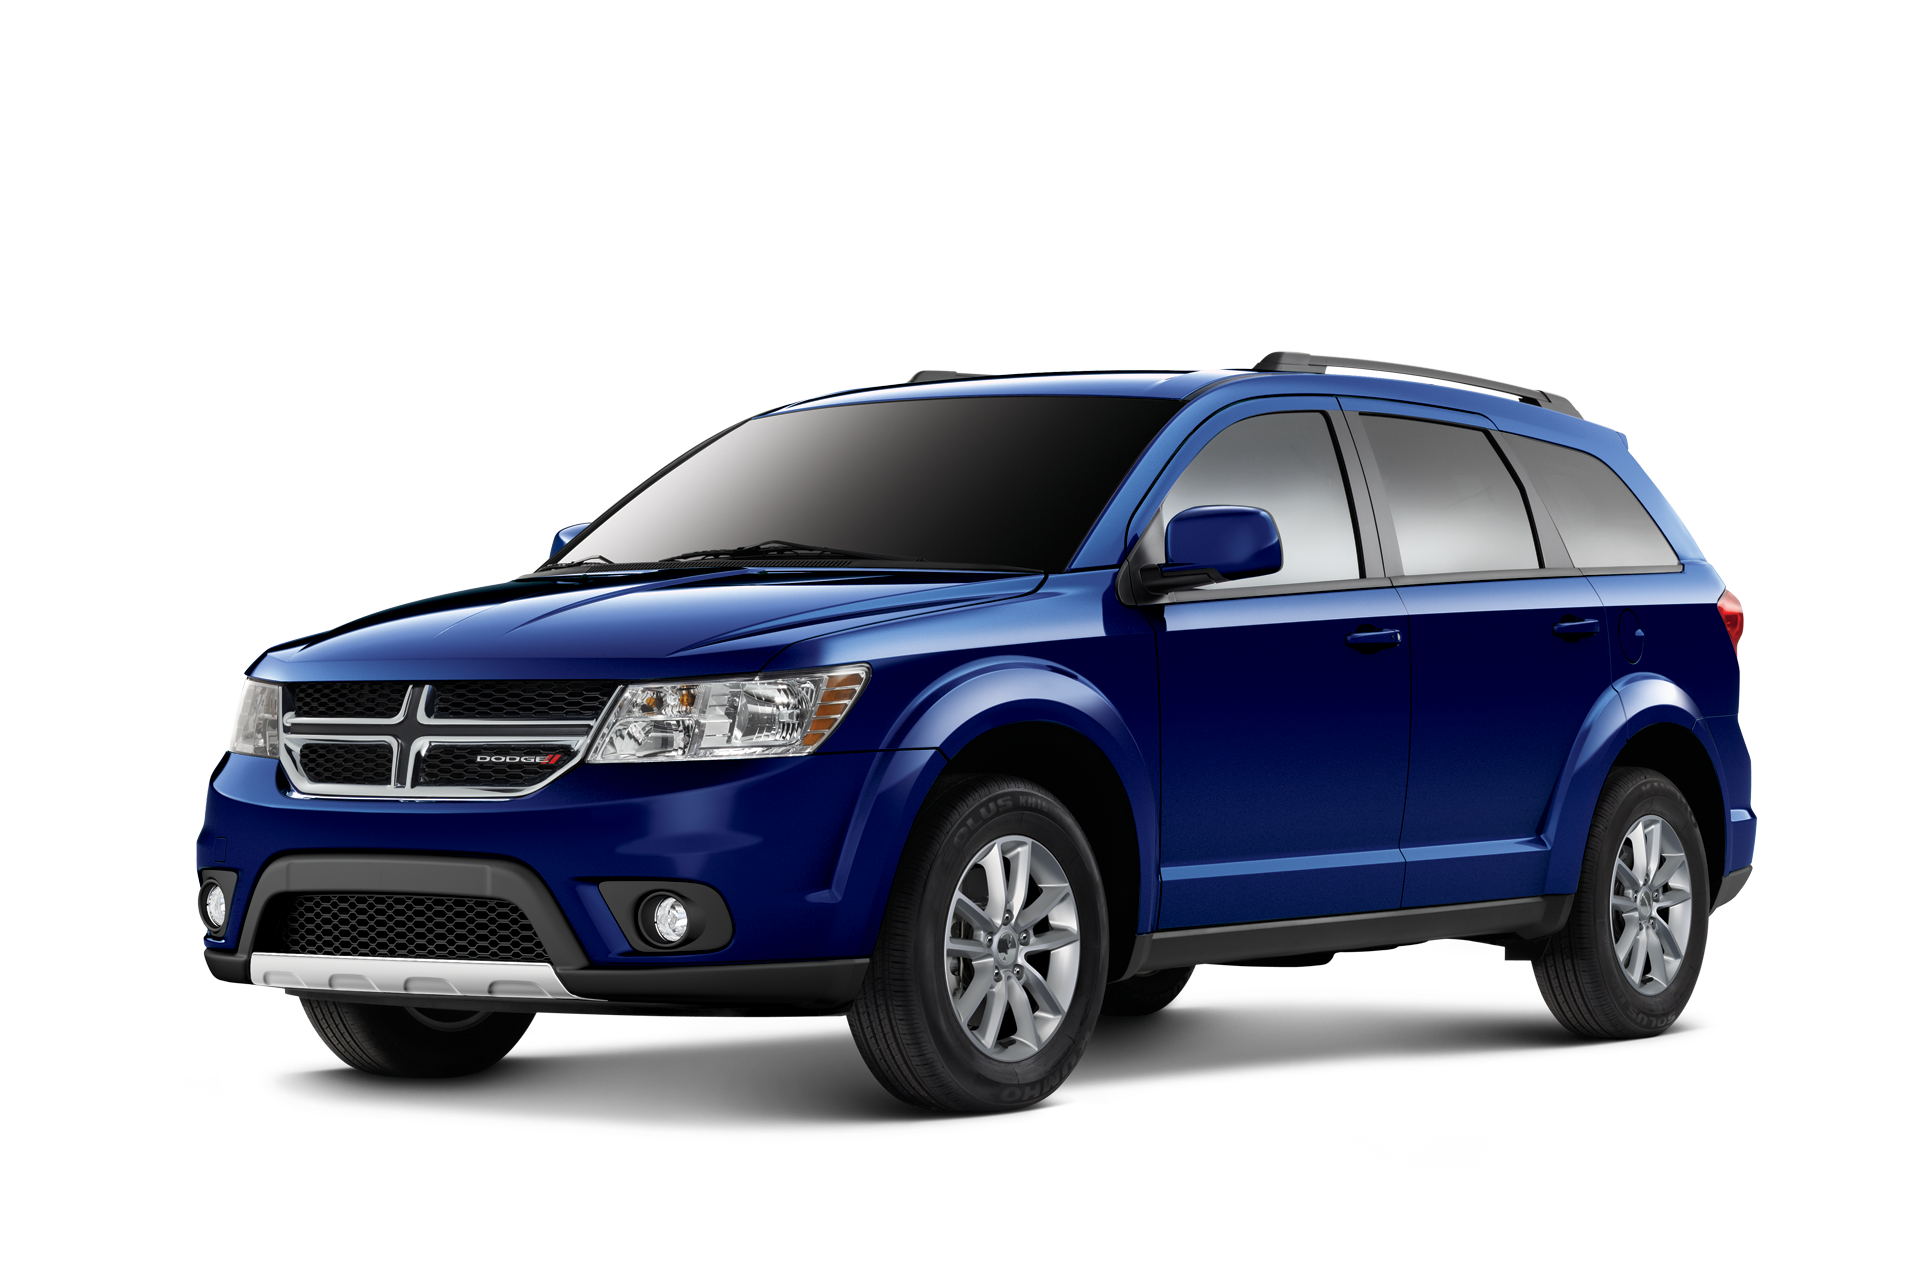 2014 dodge journey offers dynamic power and handling on any road. Black Bedroom Furniture Sets. Home Design Ideas